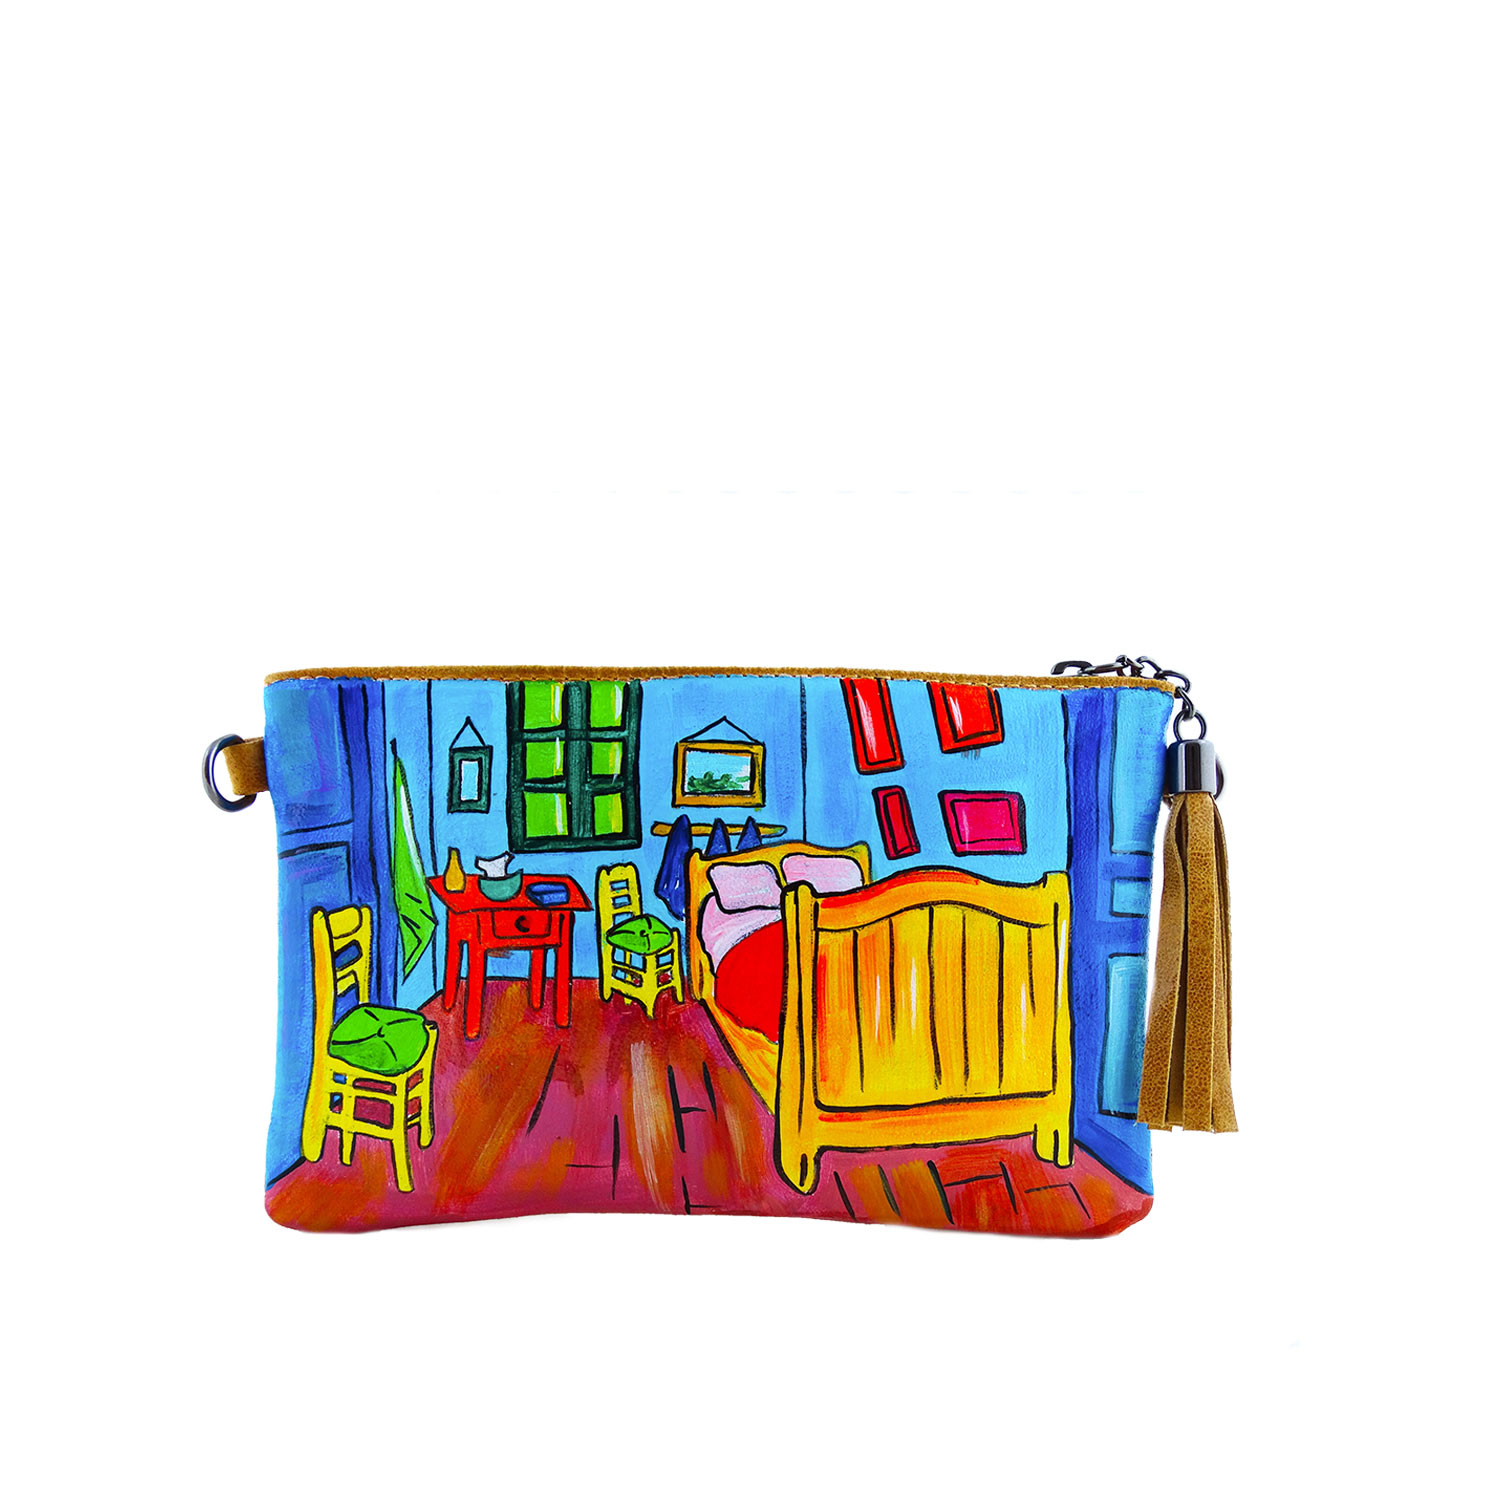 Hand-painted bag pochette - The room by Van Gogh